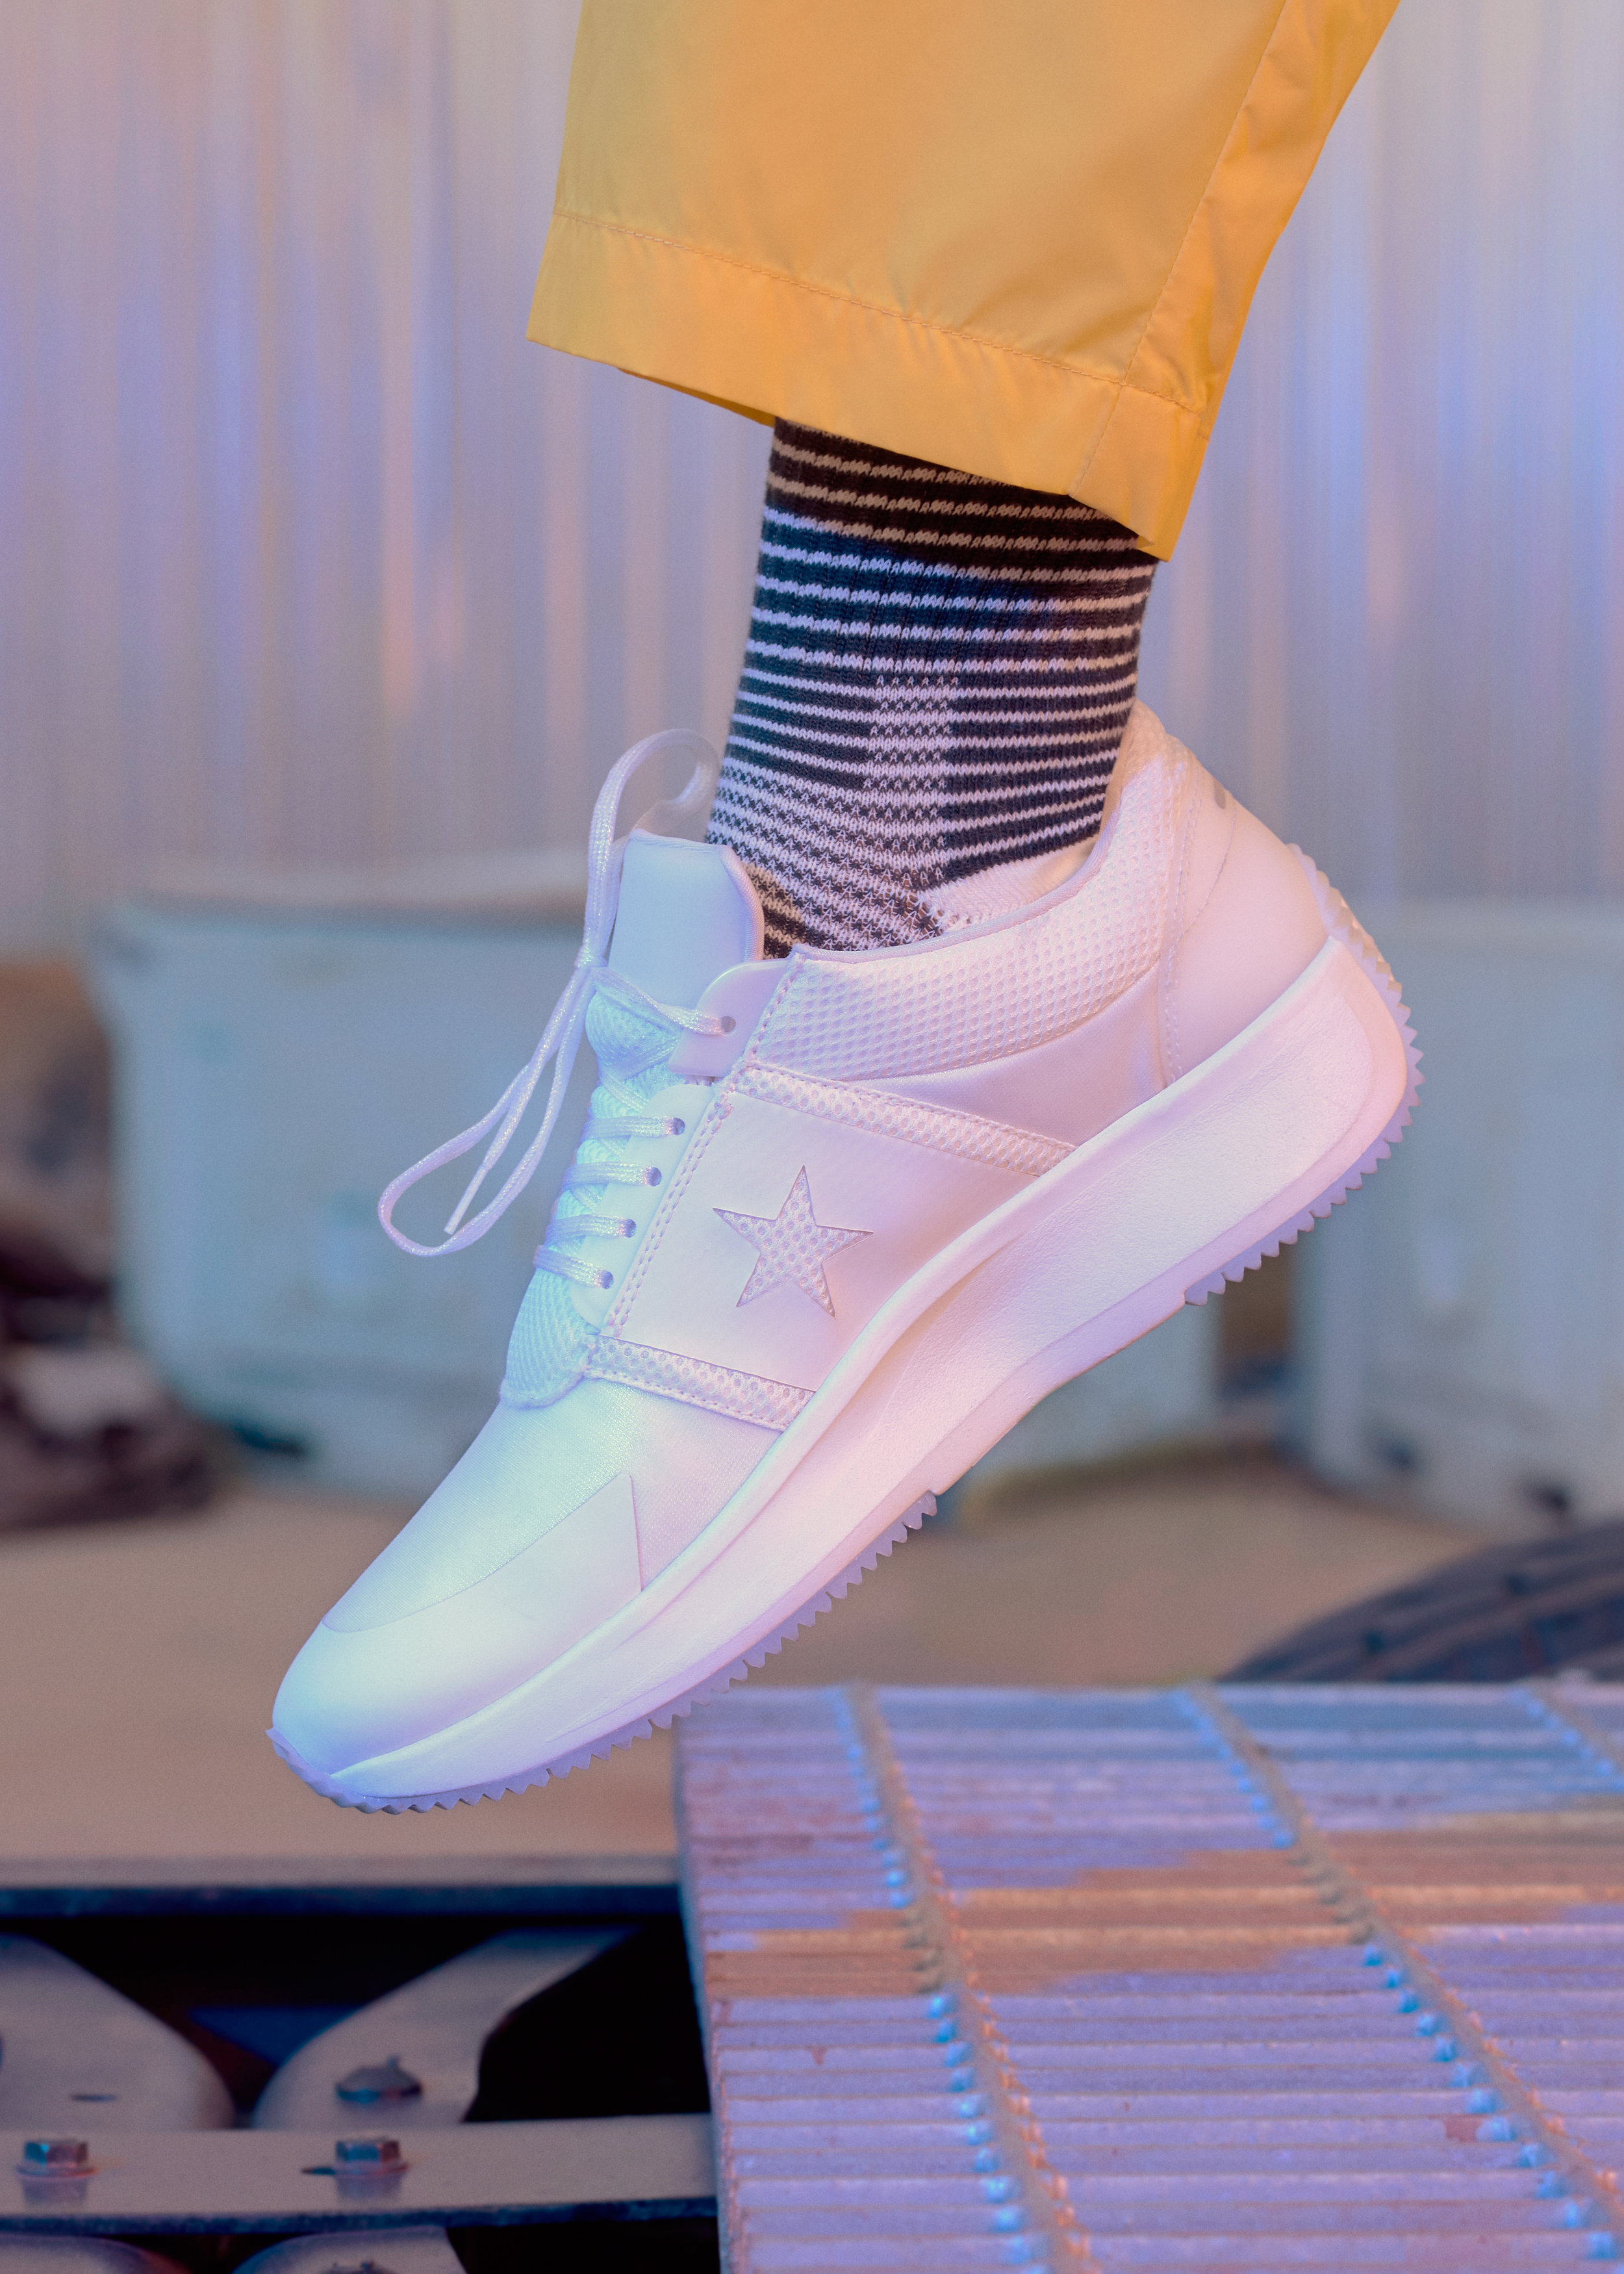 CONVERSE_03_TRANSLUCENT_FEMALE_WHITE_268_v1LR.jpg